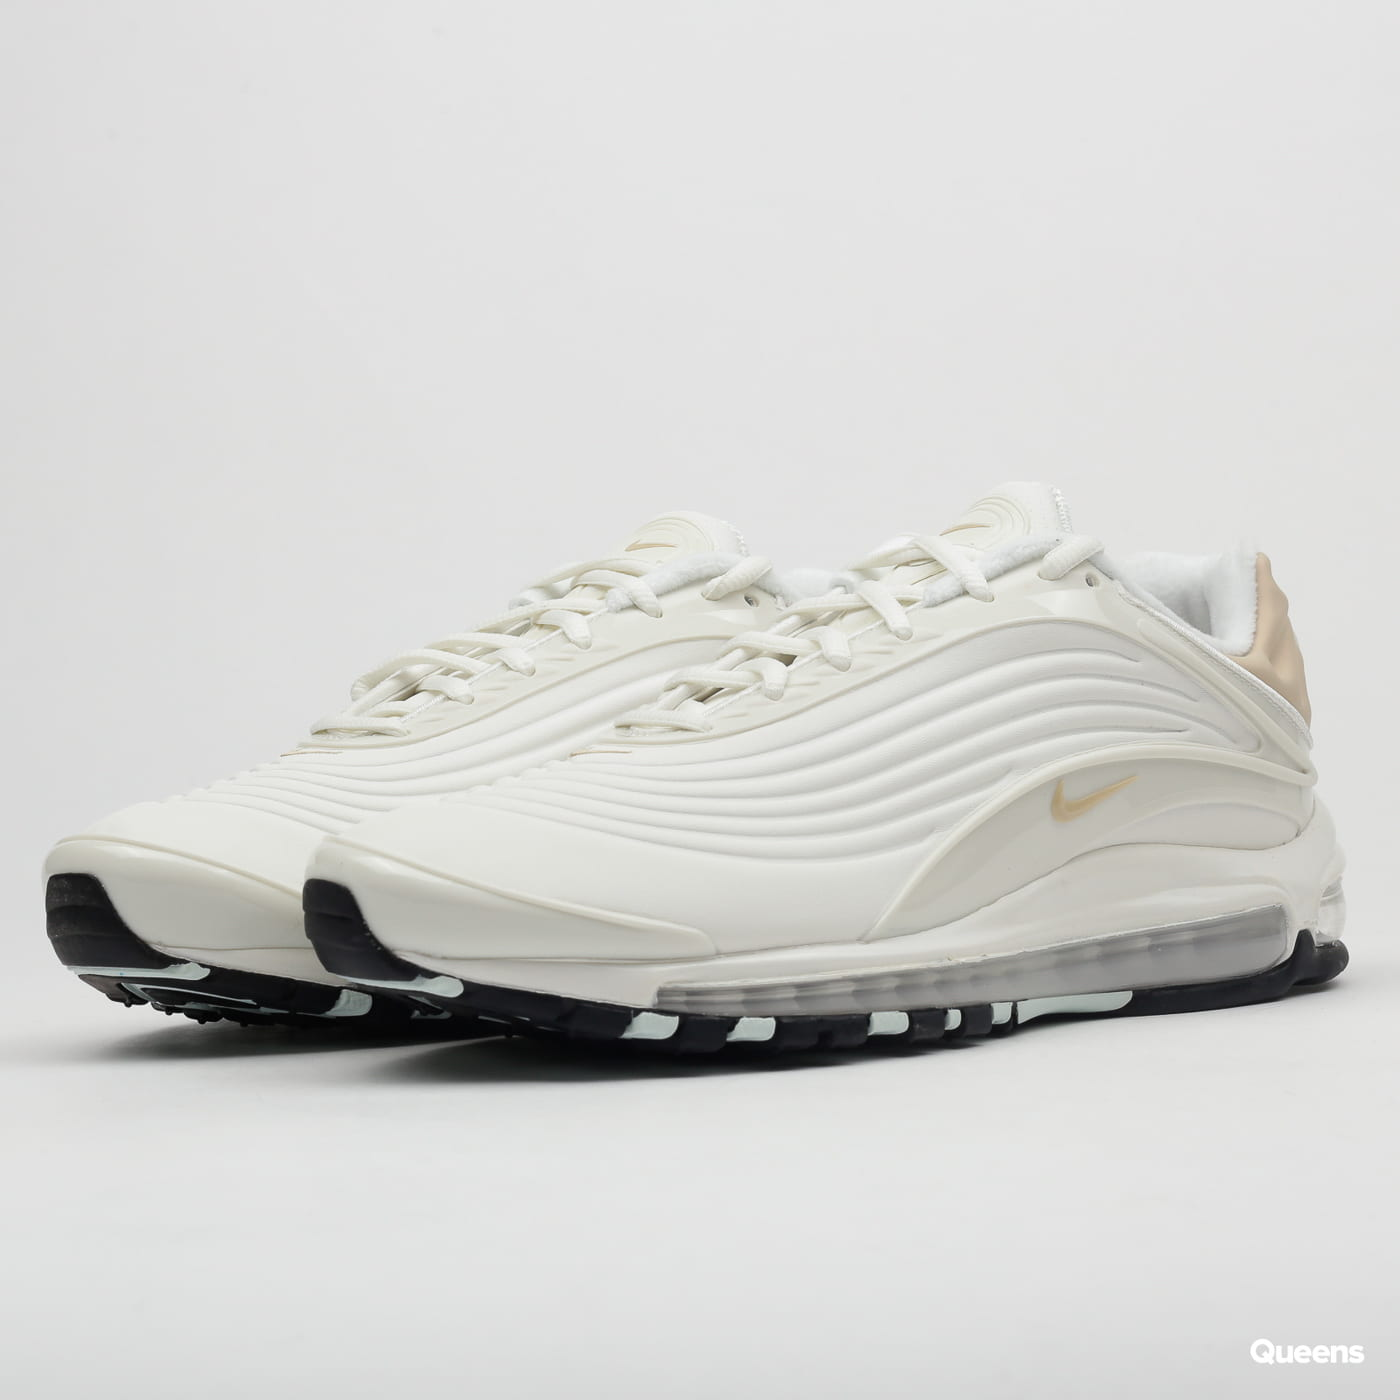 Nike Air Max Deluxe SE sail / desert ore - teal tint